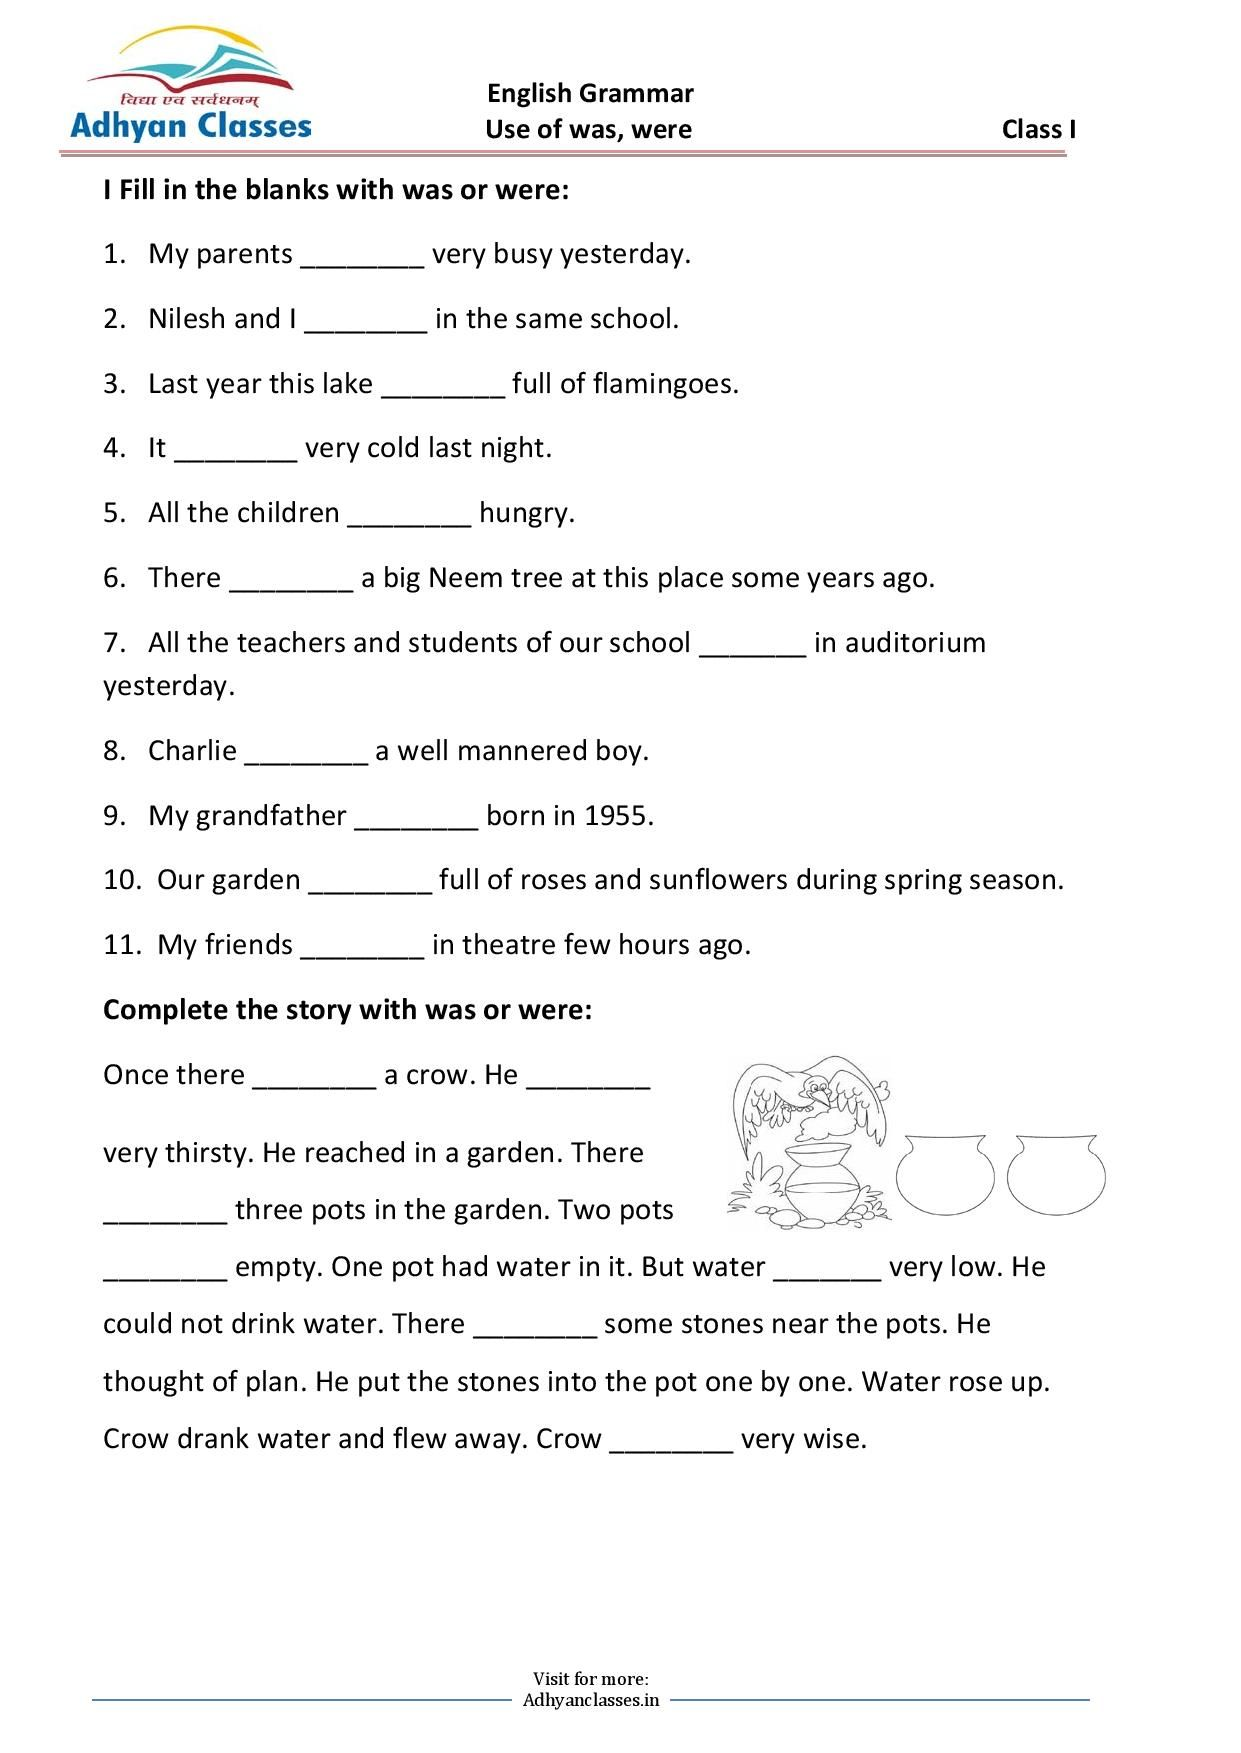 Use Of Was Were Worksheet For Grade I In